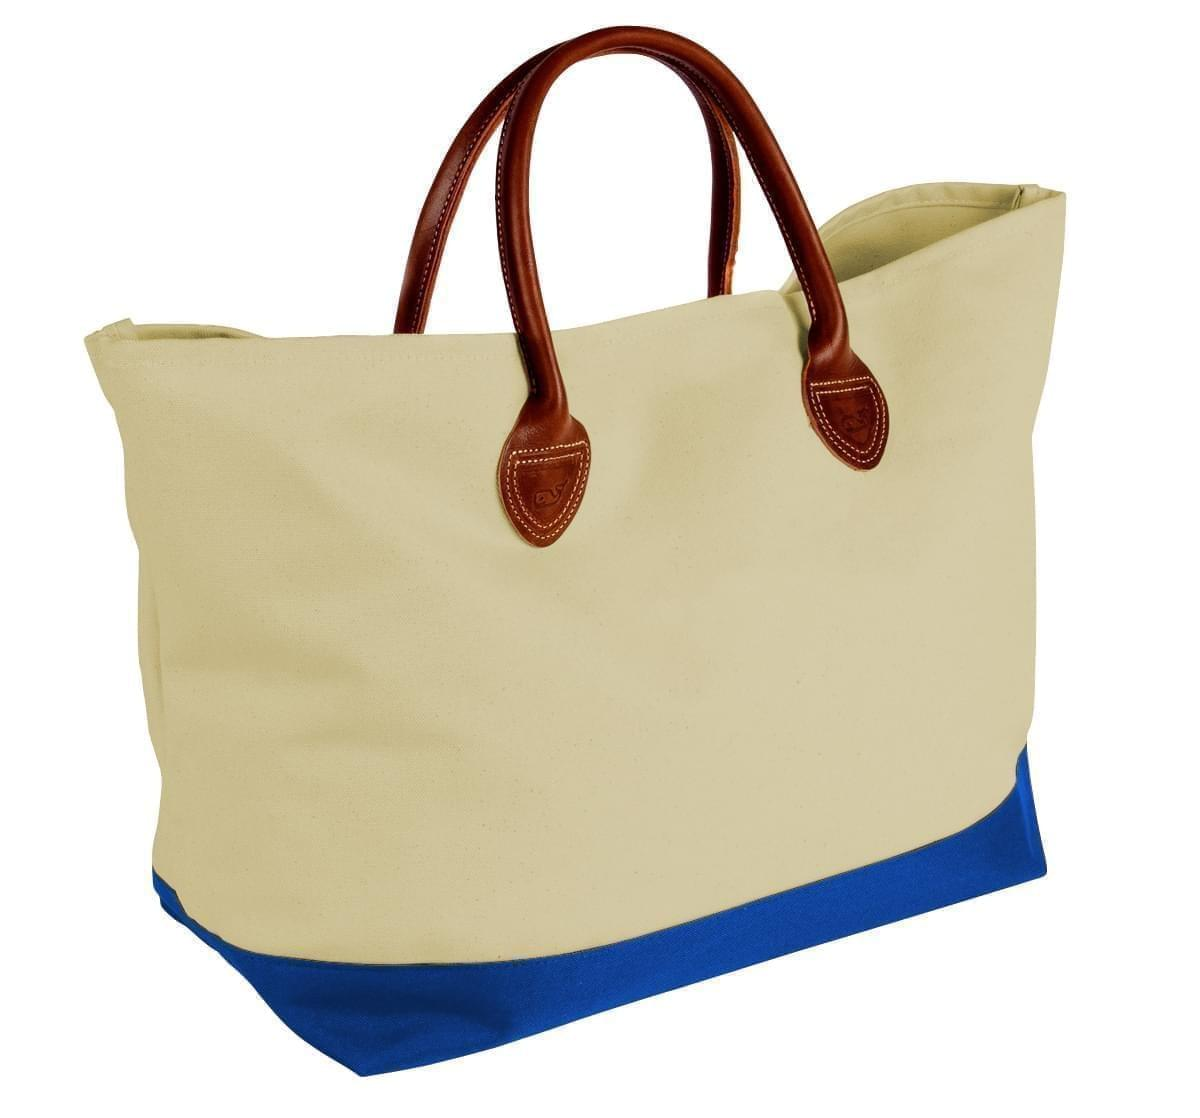 USA Made Canvas Leather Handle Totes, Natural-Royal Blue, 10899-MK9